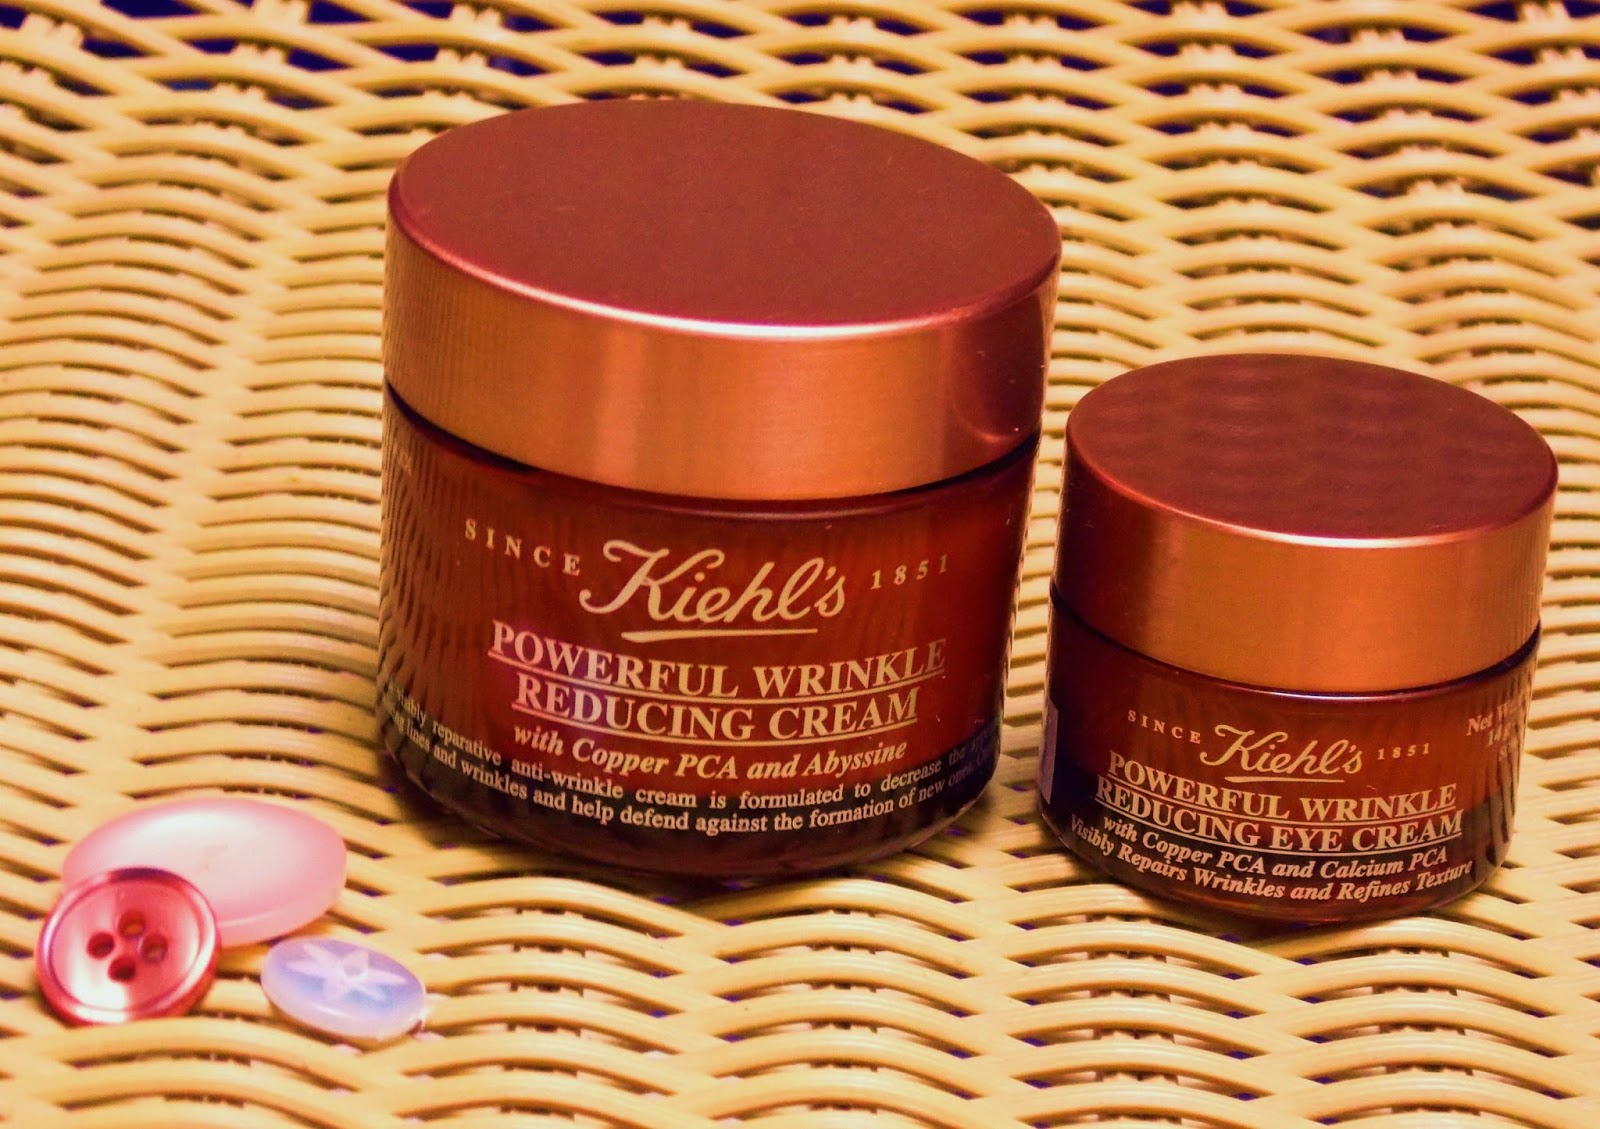 Kiehls, beauty, Kiehls Powerful Wrinkle Reducing Face and Eye Cream Review, skincare Review, Should I be using anti wrinkle products, how to improve fine lines and wrinkles, Skincare,